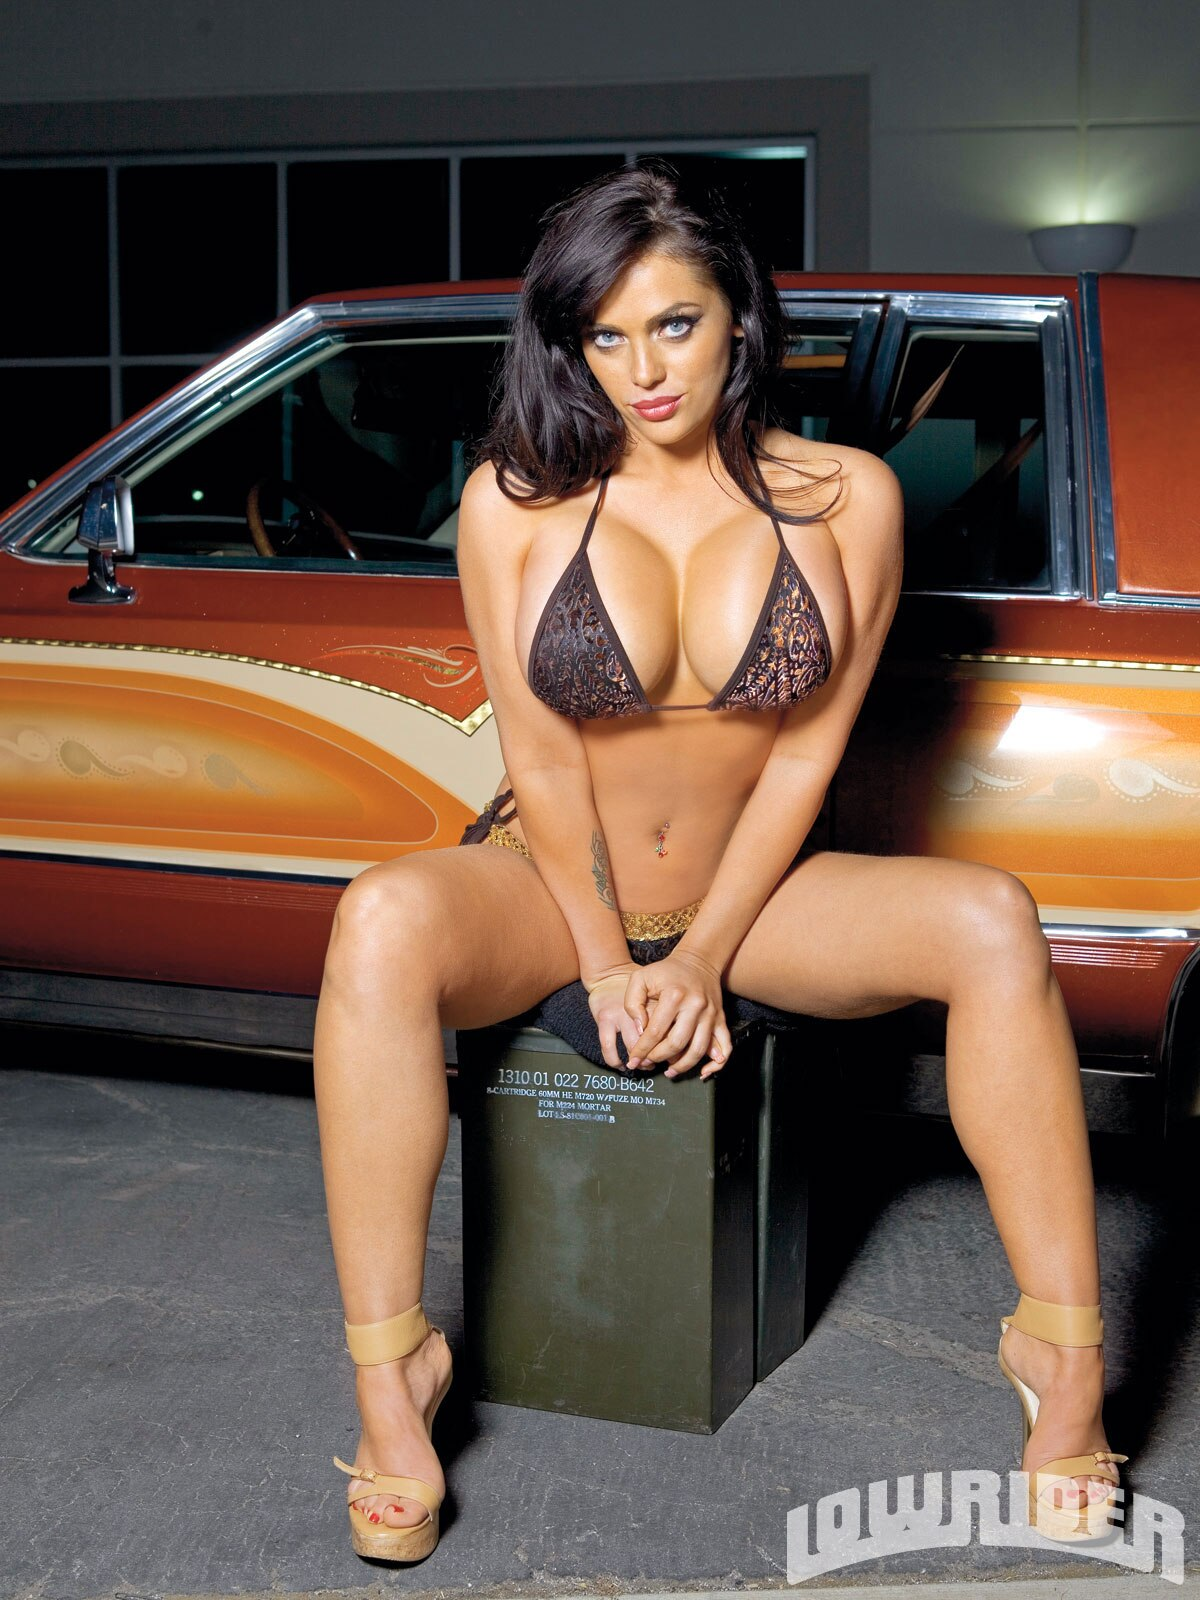 low rider magazine girls nude